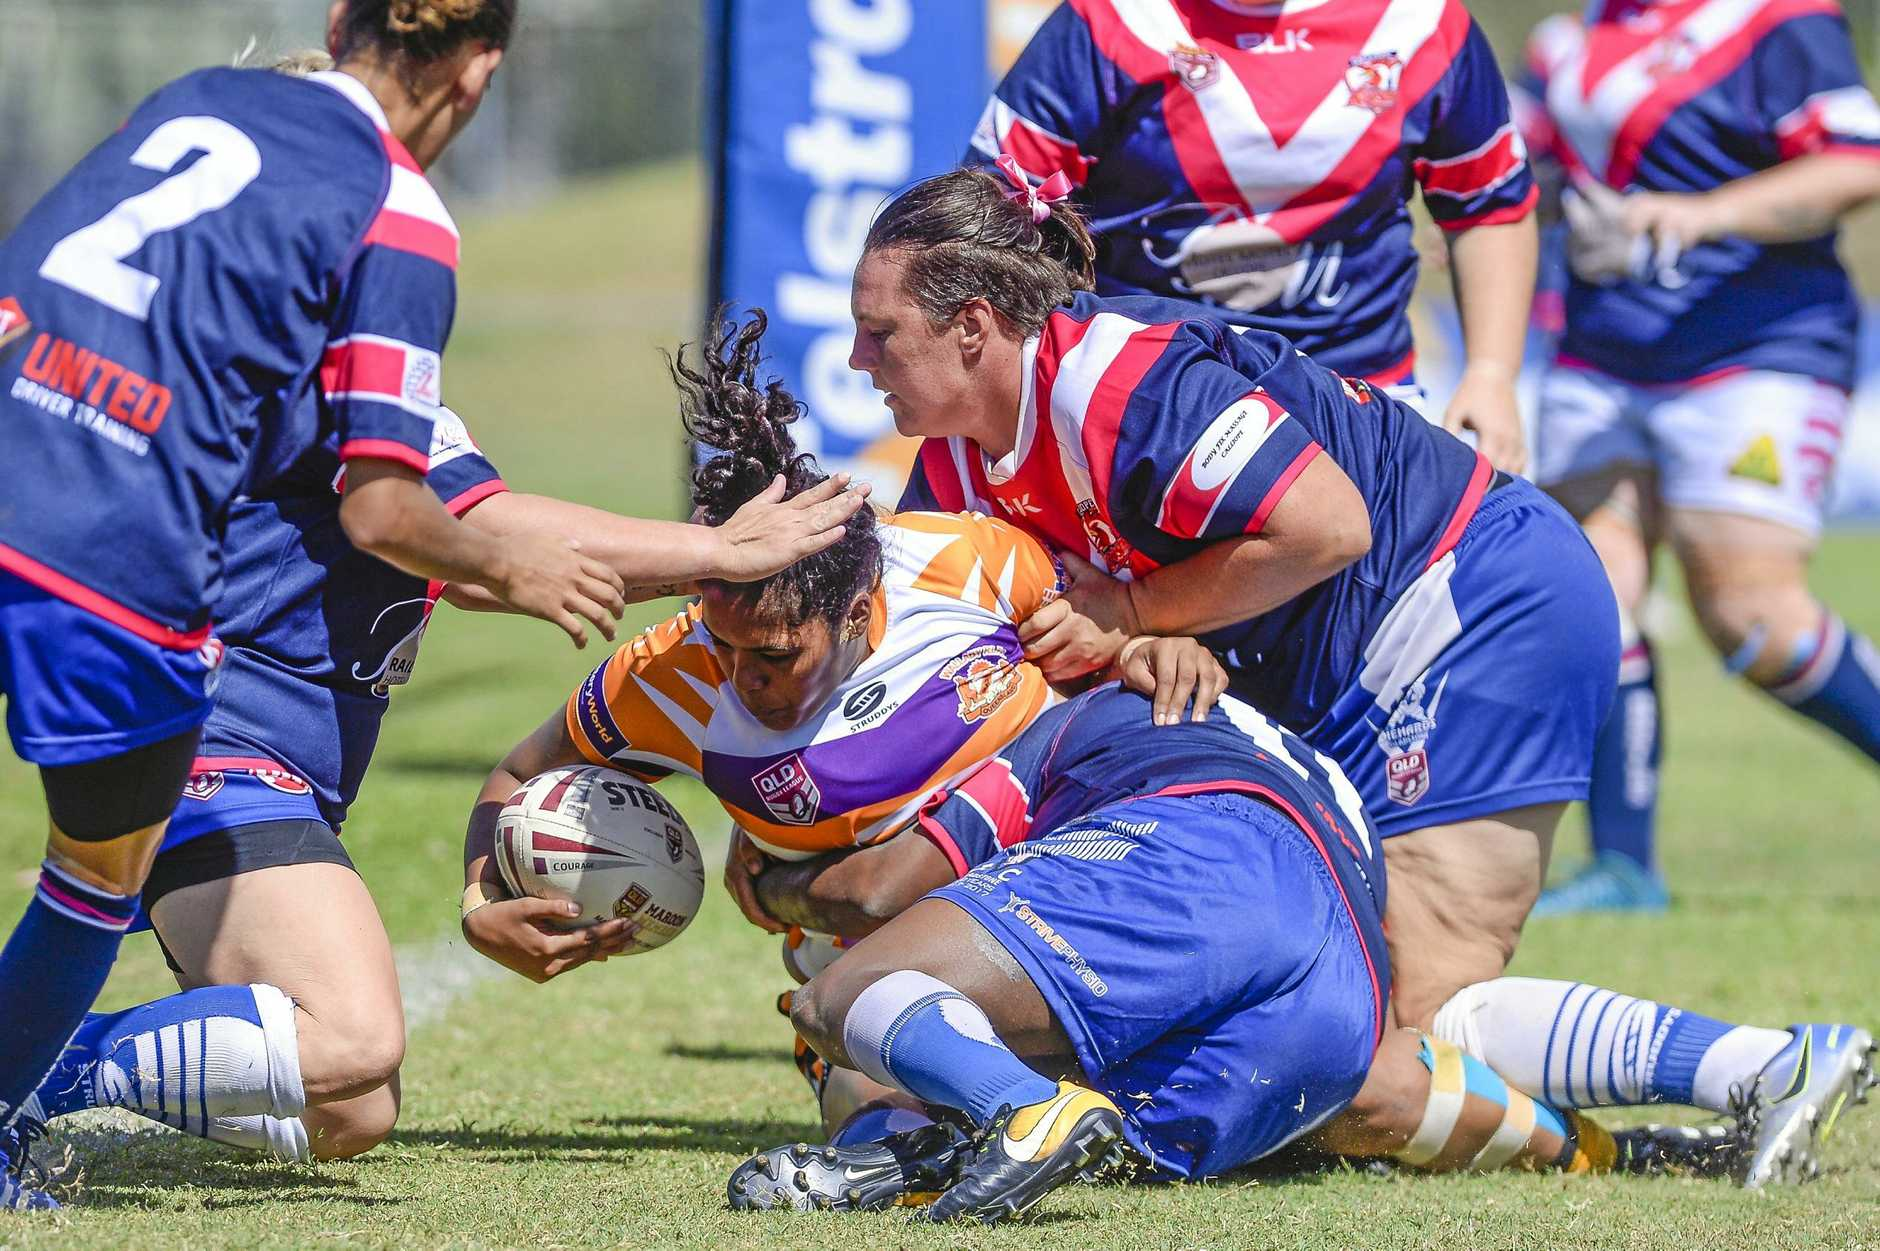 Gladstone Valleys-Roosters play Gladstone Wallabys in the Bundaberg Gladstone Intercity Womens Competition at Marley Brown Oval on 13 April 2019. PICTURED: Rikkara Benjamin